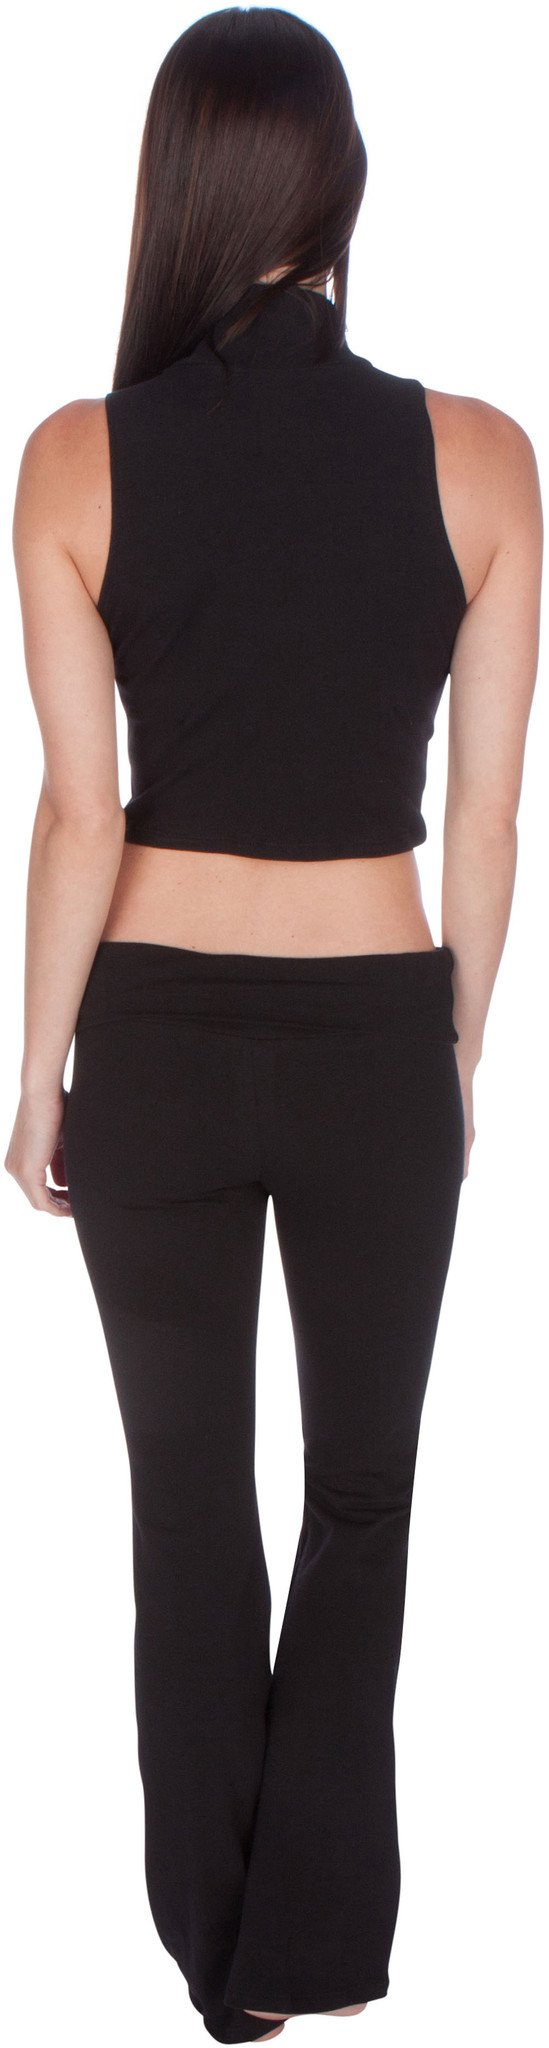 Sakkas Mock Neck Turtleneck Sleeveless Scuba Crop Top - Made in USA